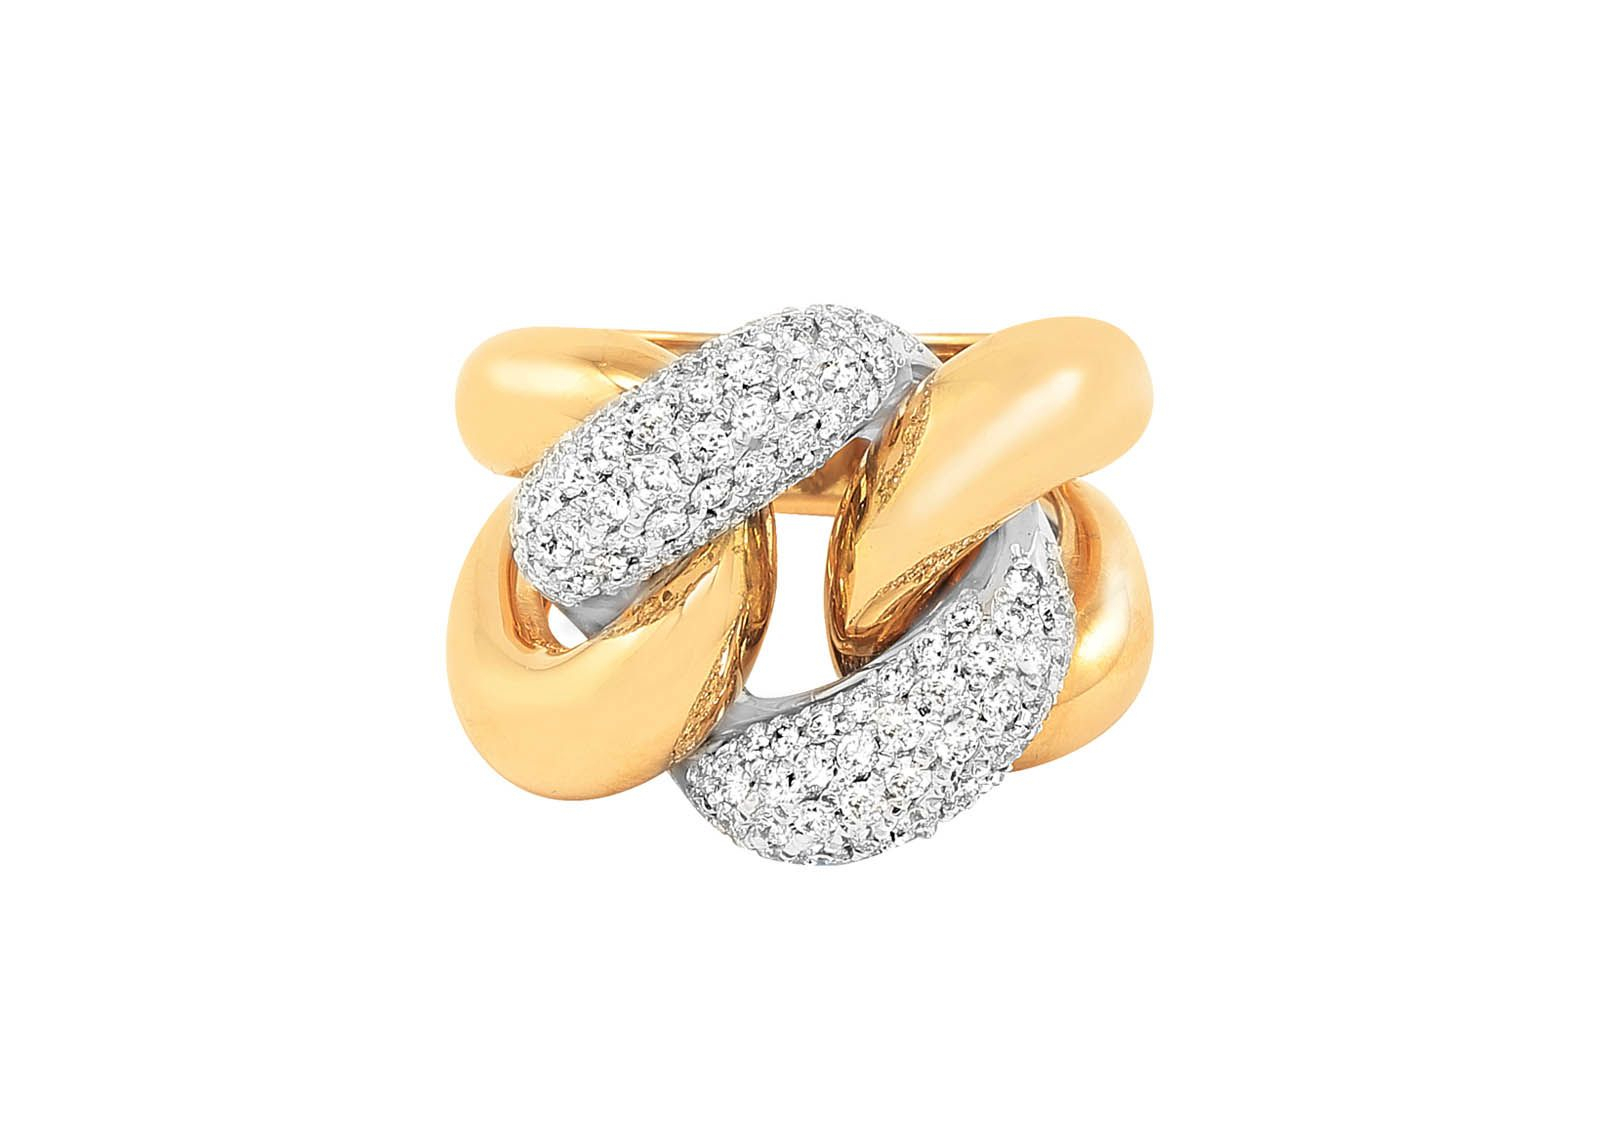 Jean Saadé Collections Modern, Florentine And Modern – Handcrafted Inside Newest Elegant Sparkle Rings (View 9 of 25)